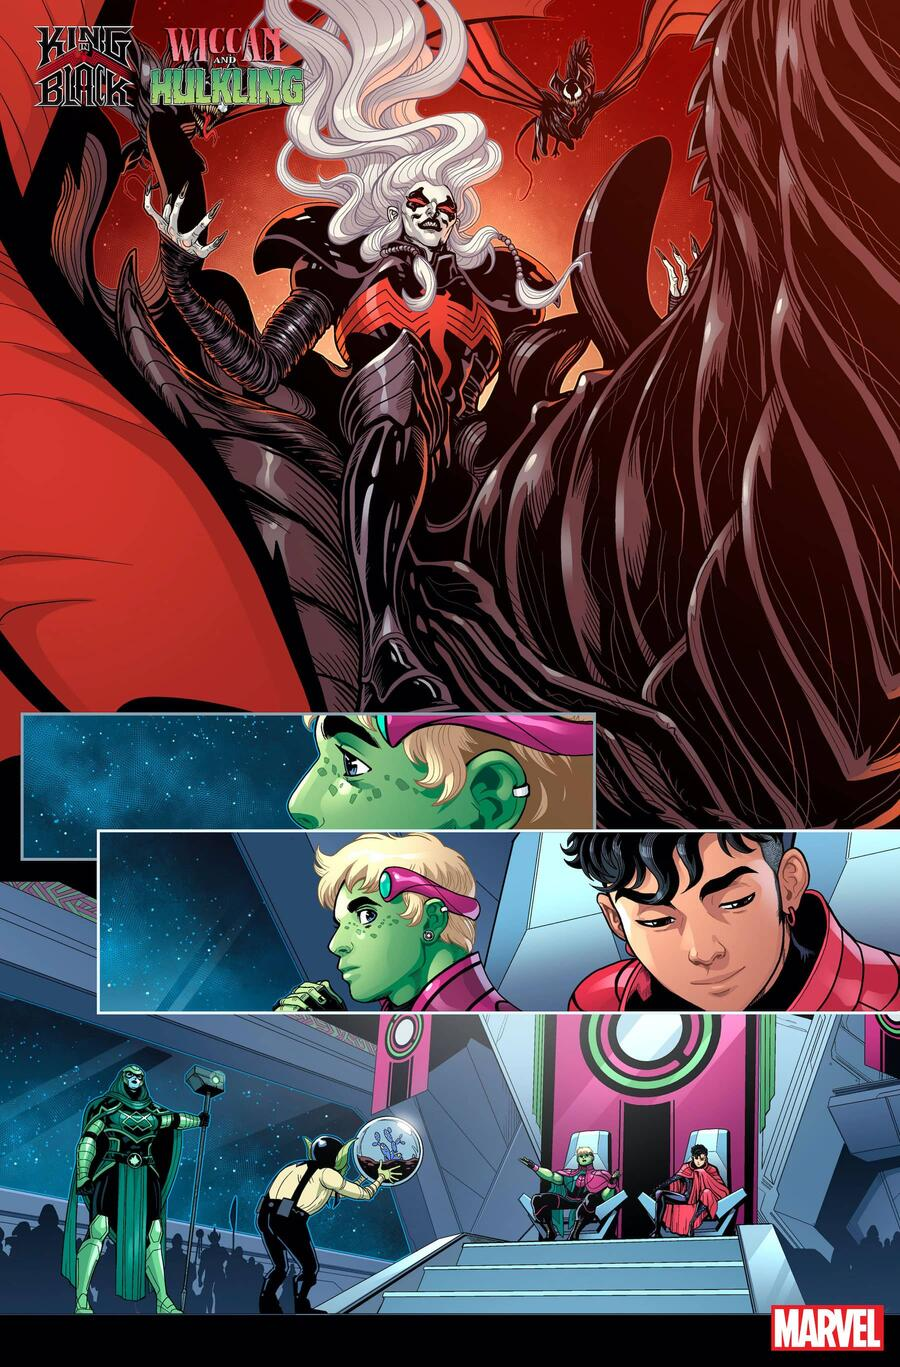 KING IN BLACK: WICCAN AND HULKLING #1 preview art by Luciano Vecchio with colors by Espen Grundetjern